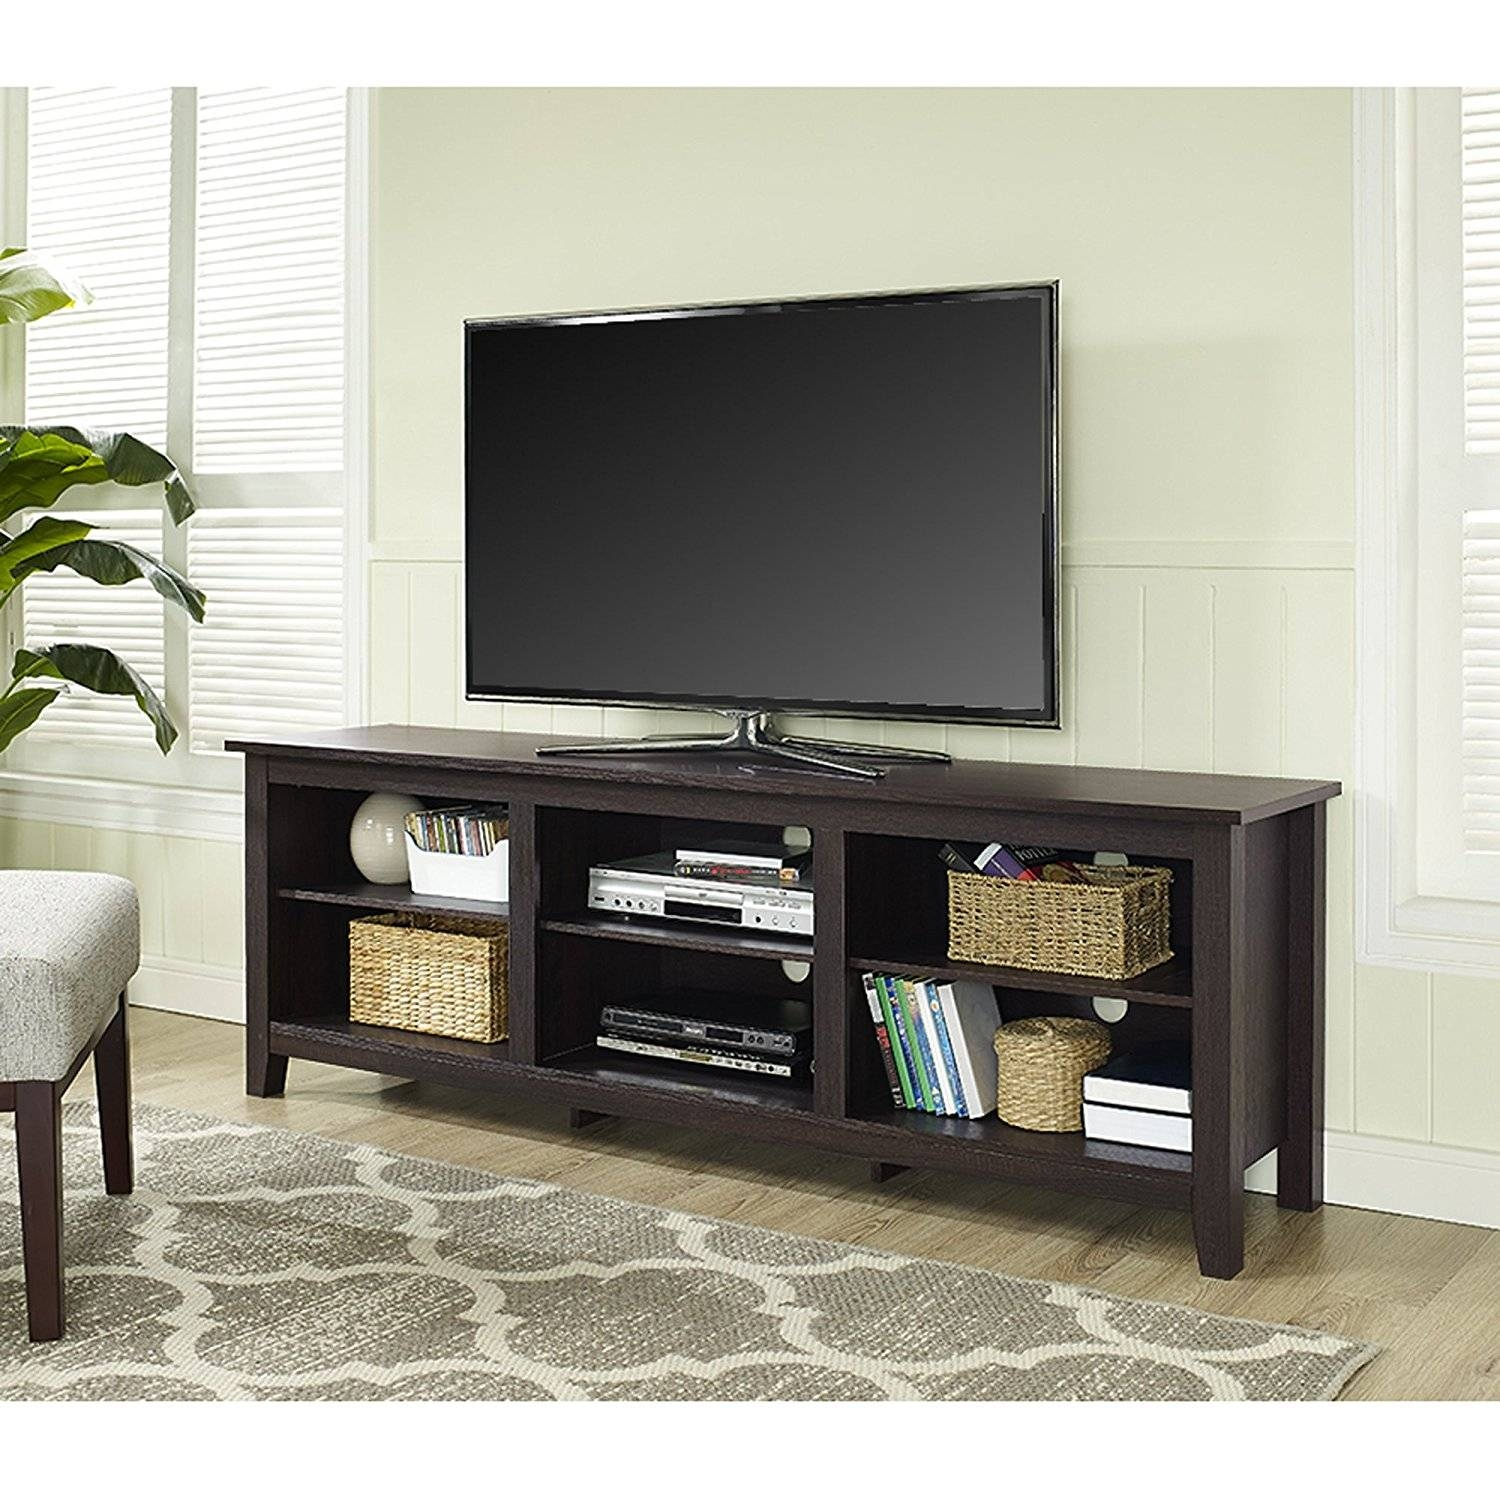 Furniture: Tv Stands For 55 Inch Flat Screen | Distressed Oak Tv Regarding Wooden Tv Stands For 55 Inch Flat Screen (View 8 of 15)